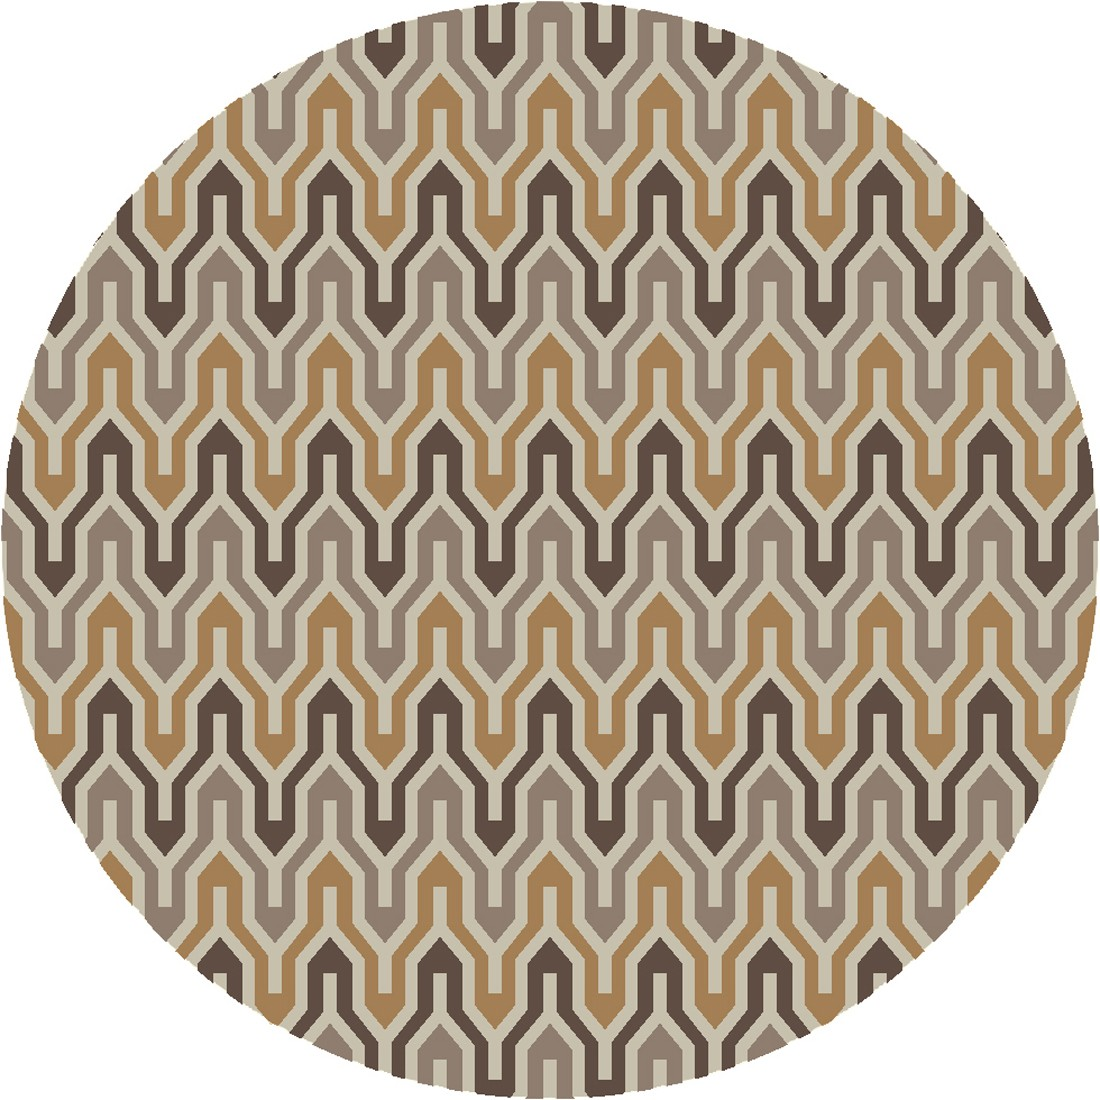 Round Surya Rugs With Mosaic Pattern For Floor Decor Ideas